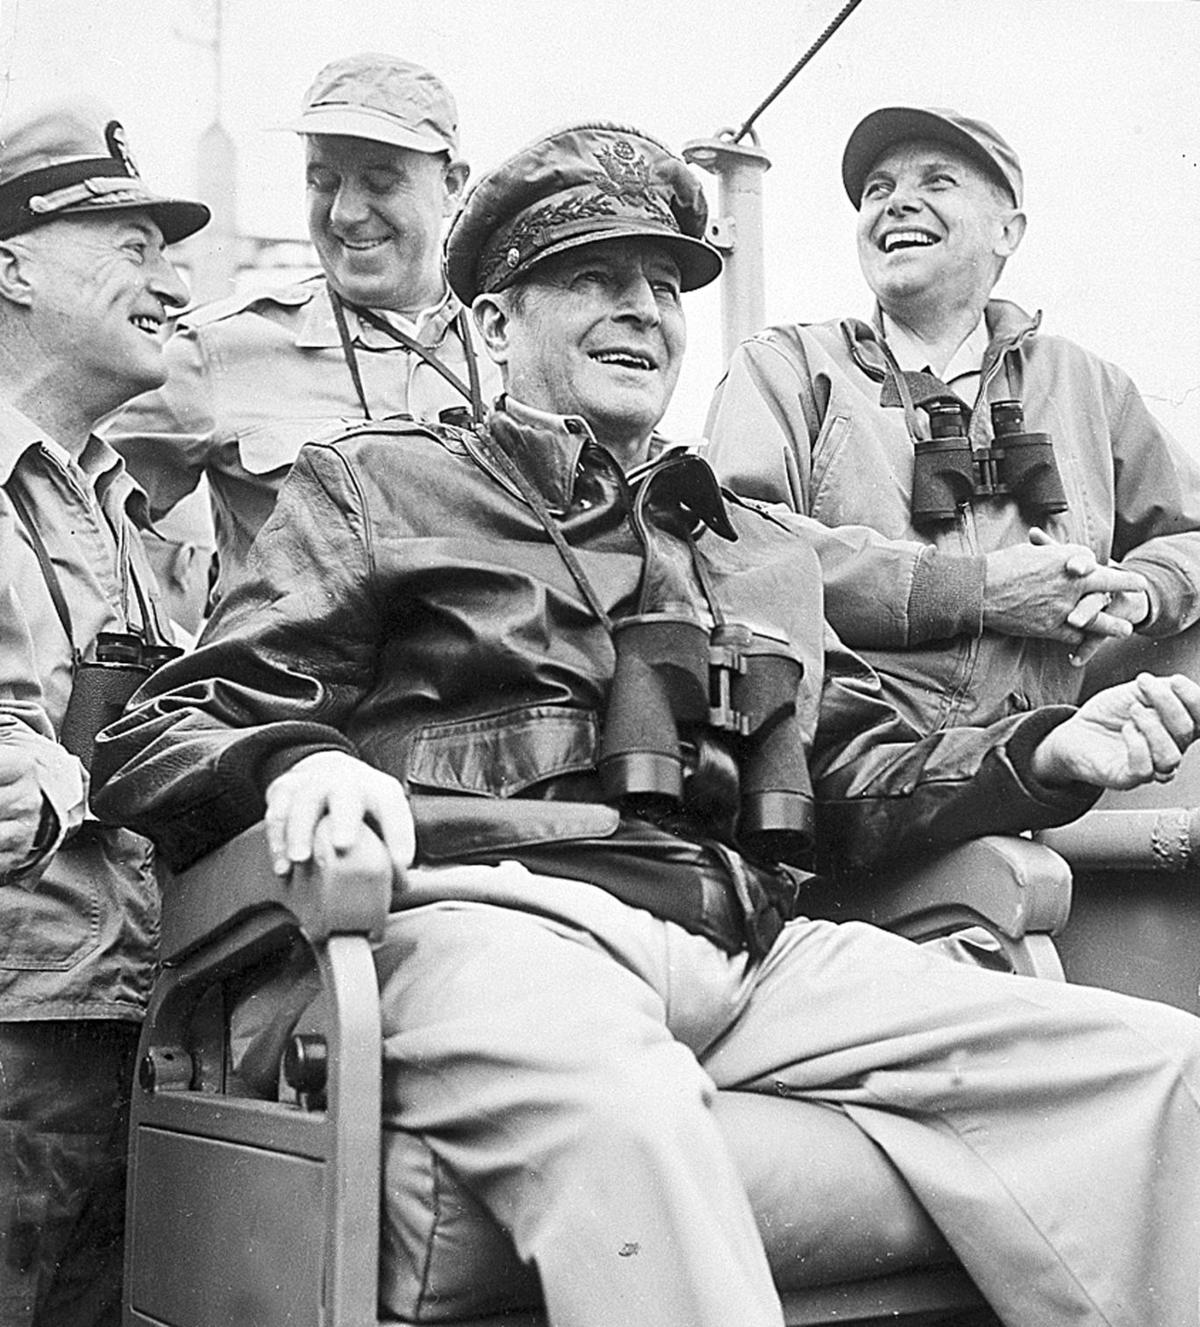 MacArthur unfettered in Korea: What might have been